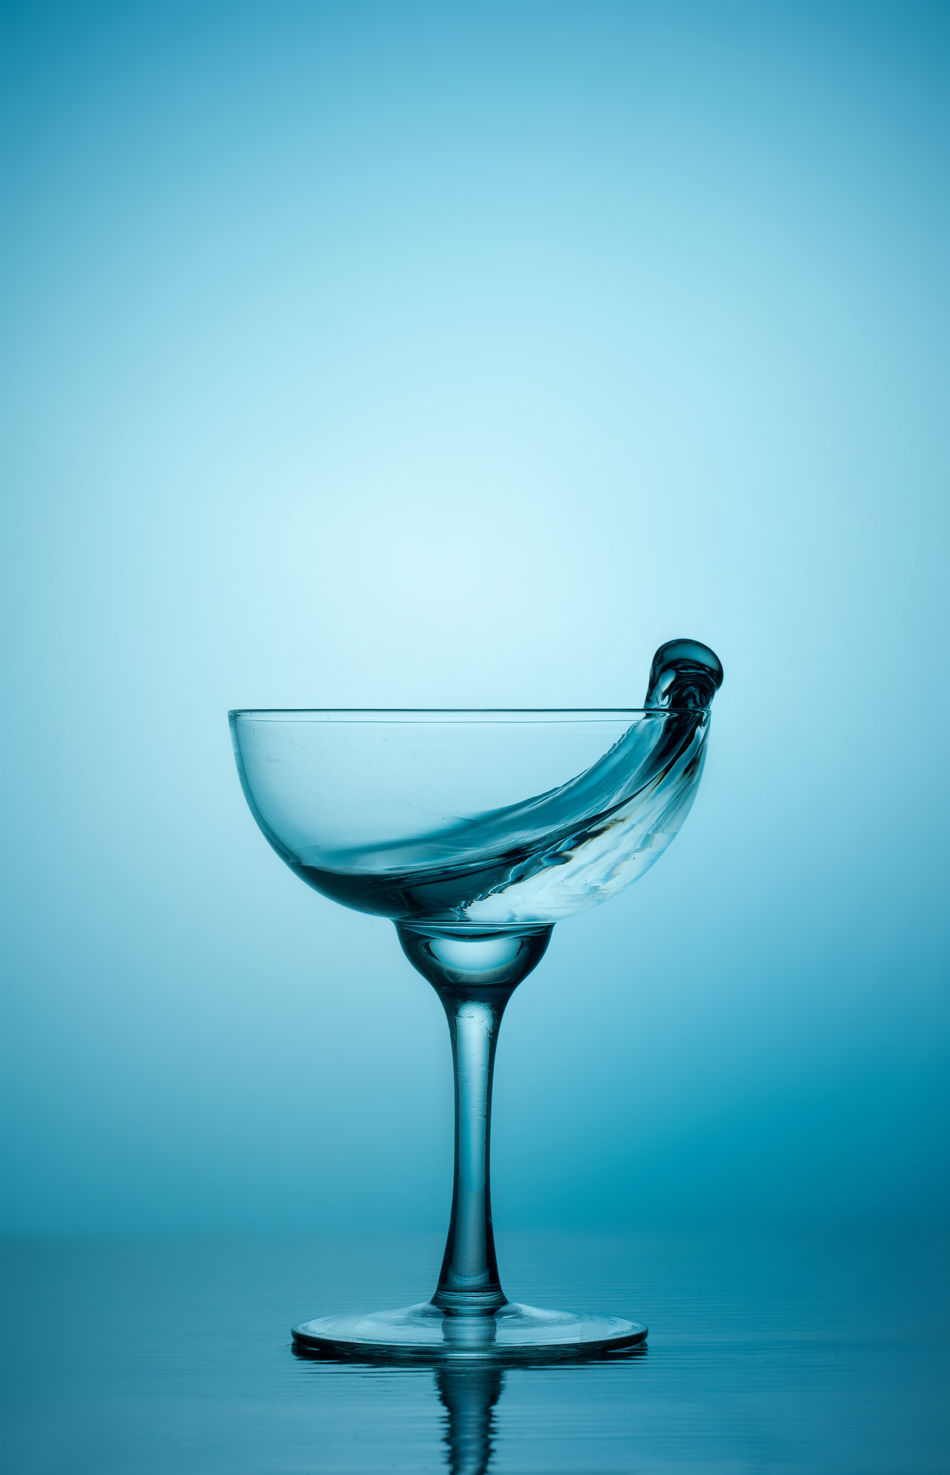 Water splash Alcohol Close-up Colored Background Day Drinking Glass Fragility Freshness Martini Glass No People Reflection Studio Shot Water